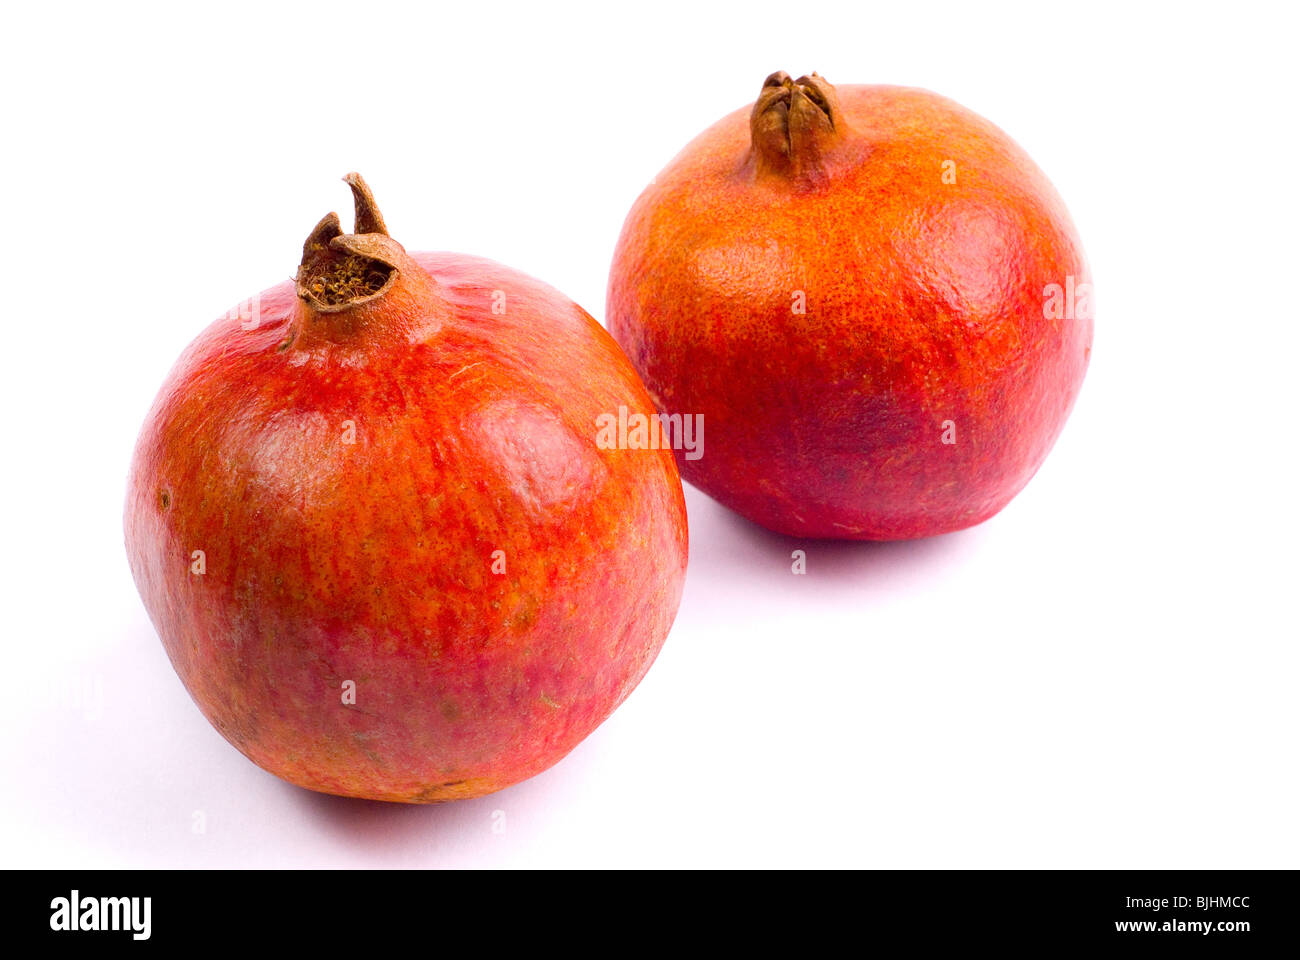 The Healthy Superfood Pomegranate Fruit - Stock Image